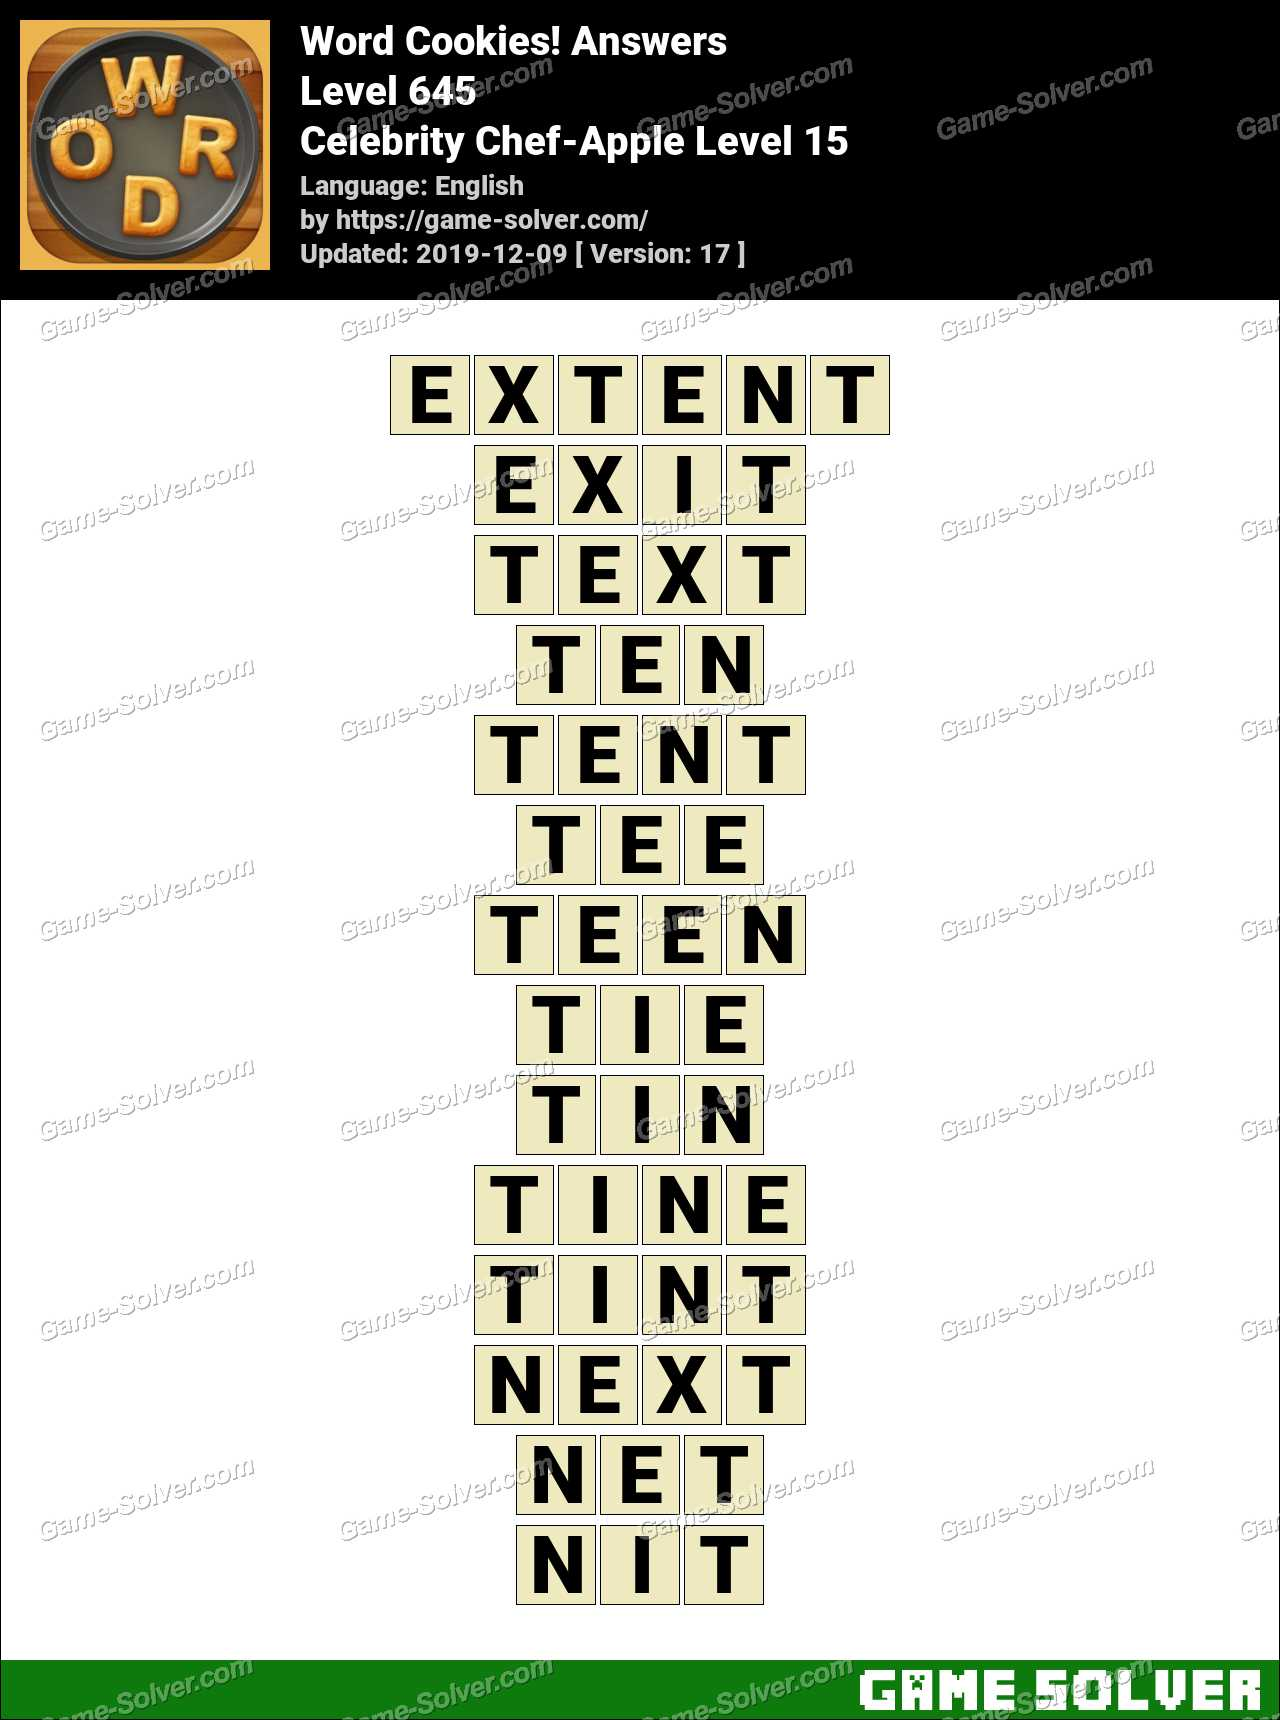 Word Cookies Celebrity Chef-Apple Level 15 Answers